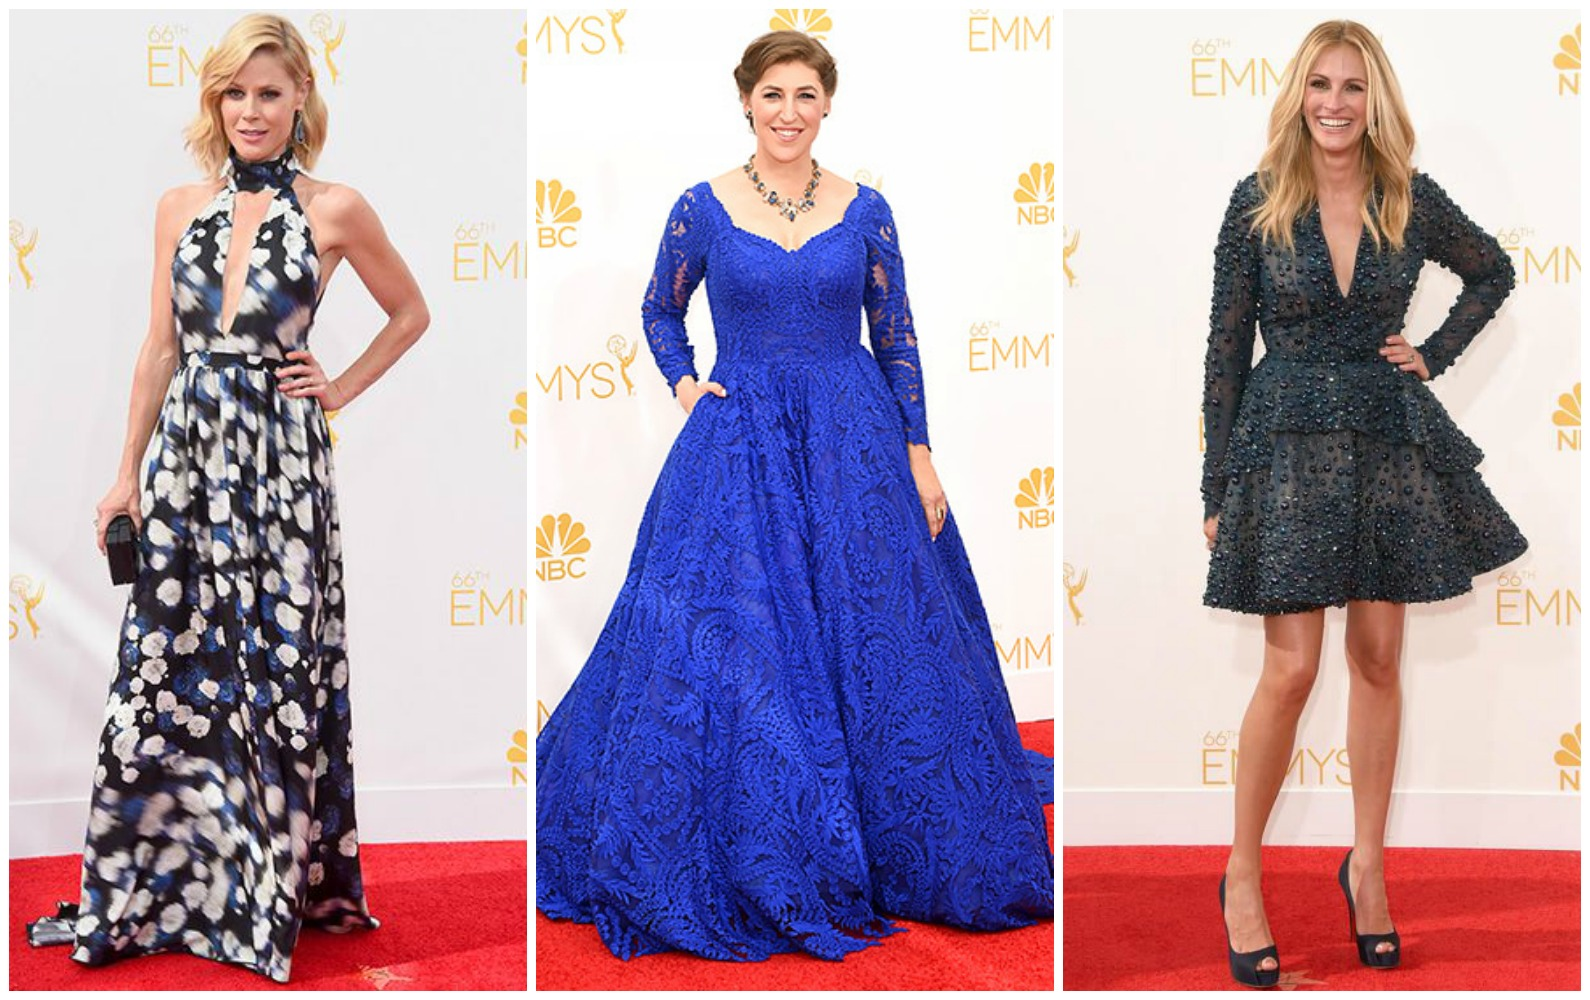 bad emmy fashion, worst dressed, 2014 emmys